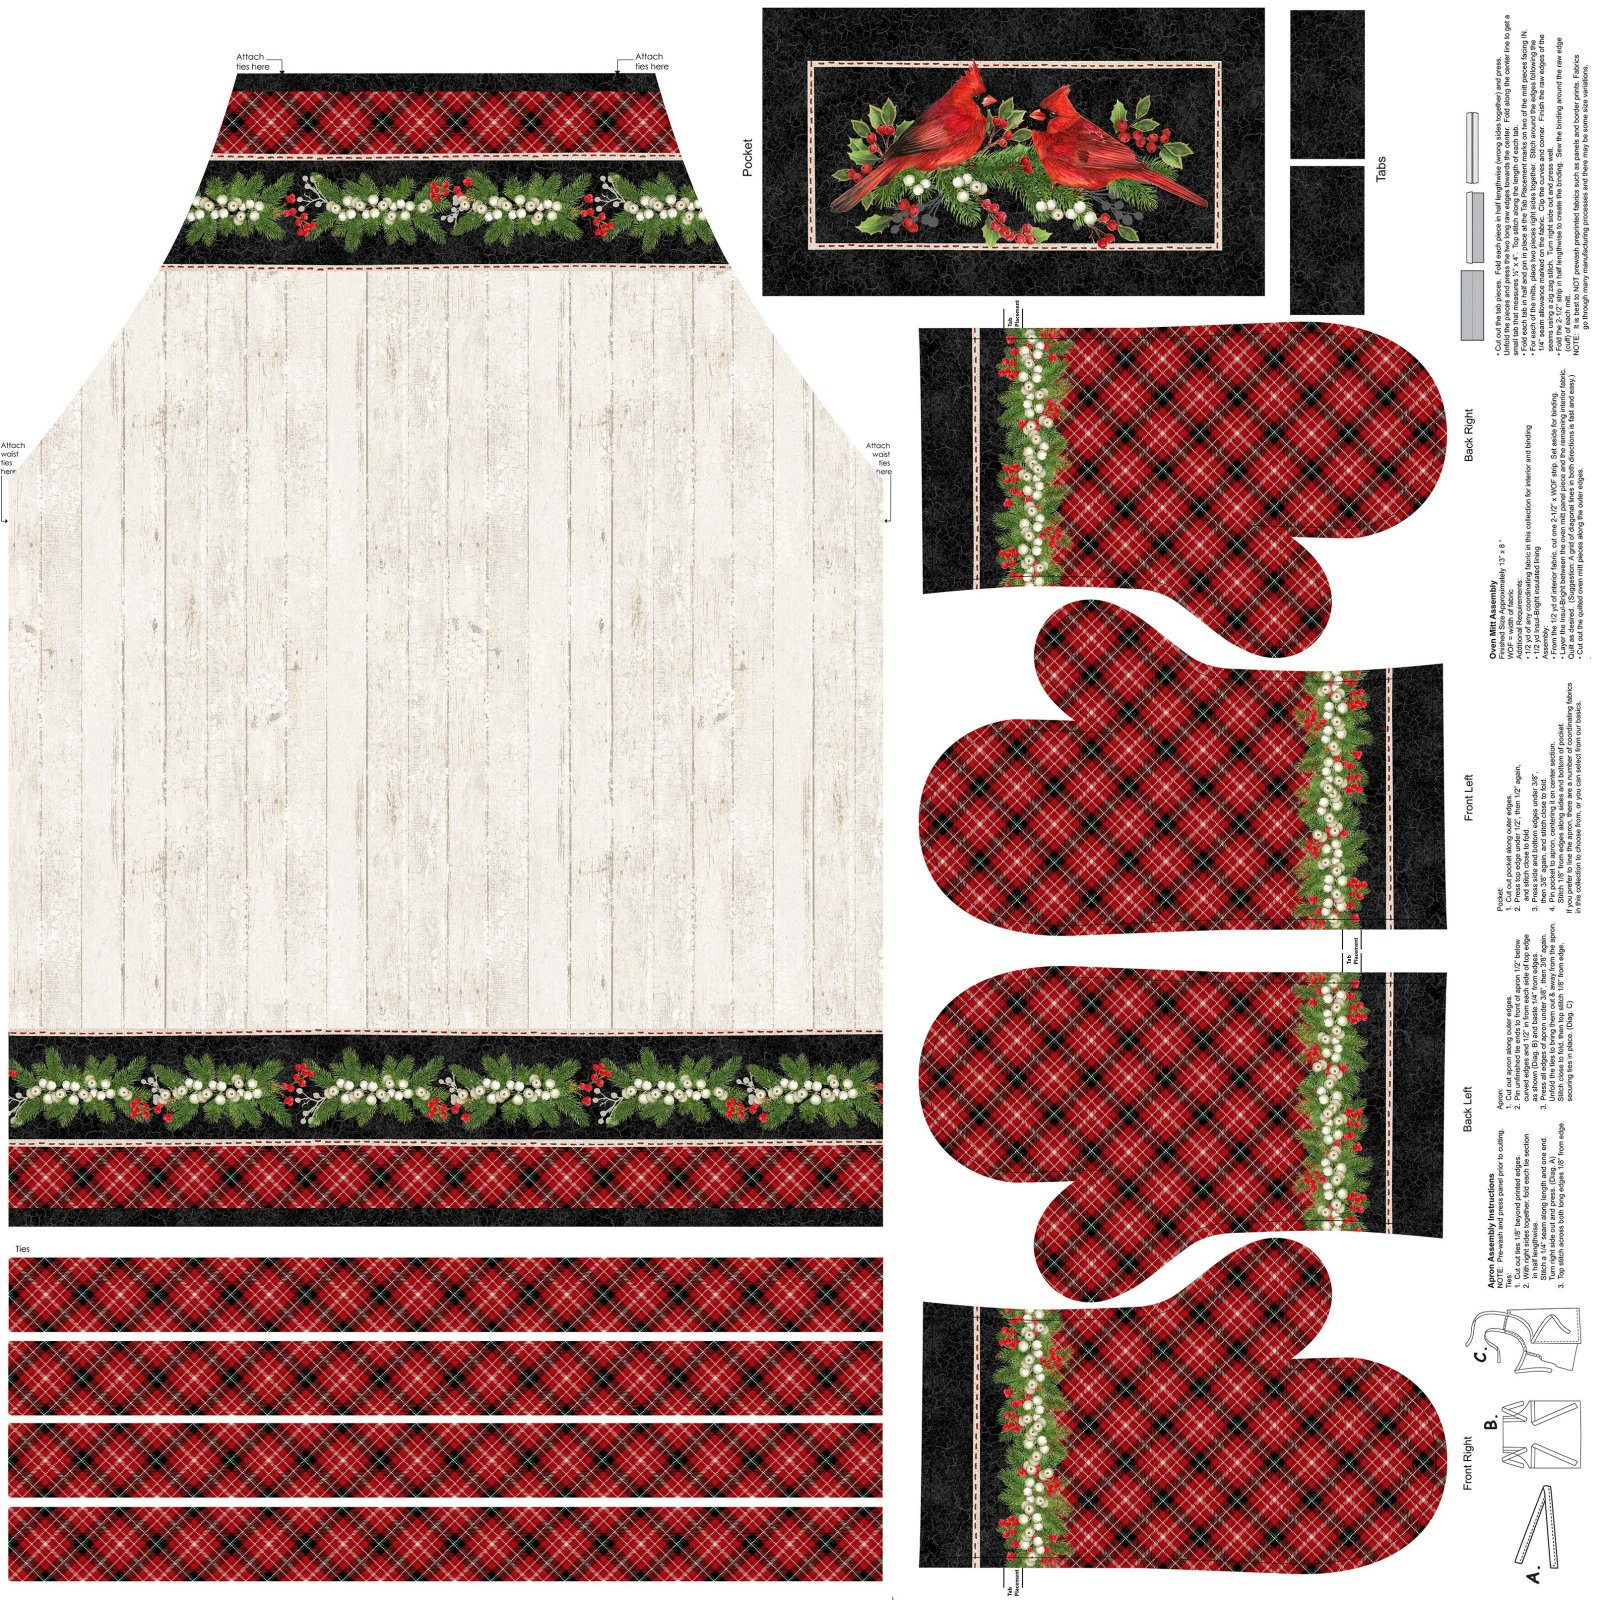 Cardinal Woods 22845-11 Apron & Oven Mitts 43 Panel